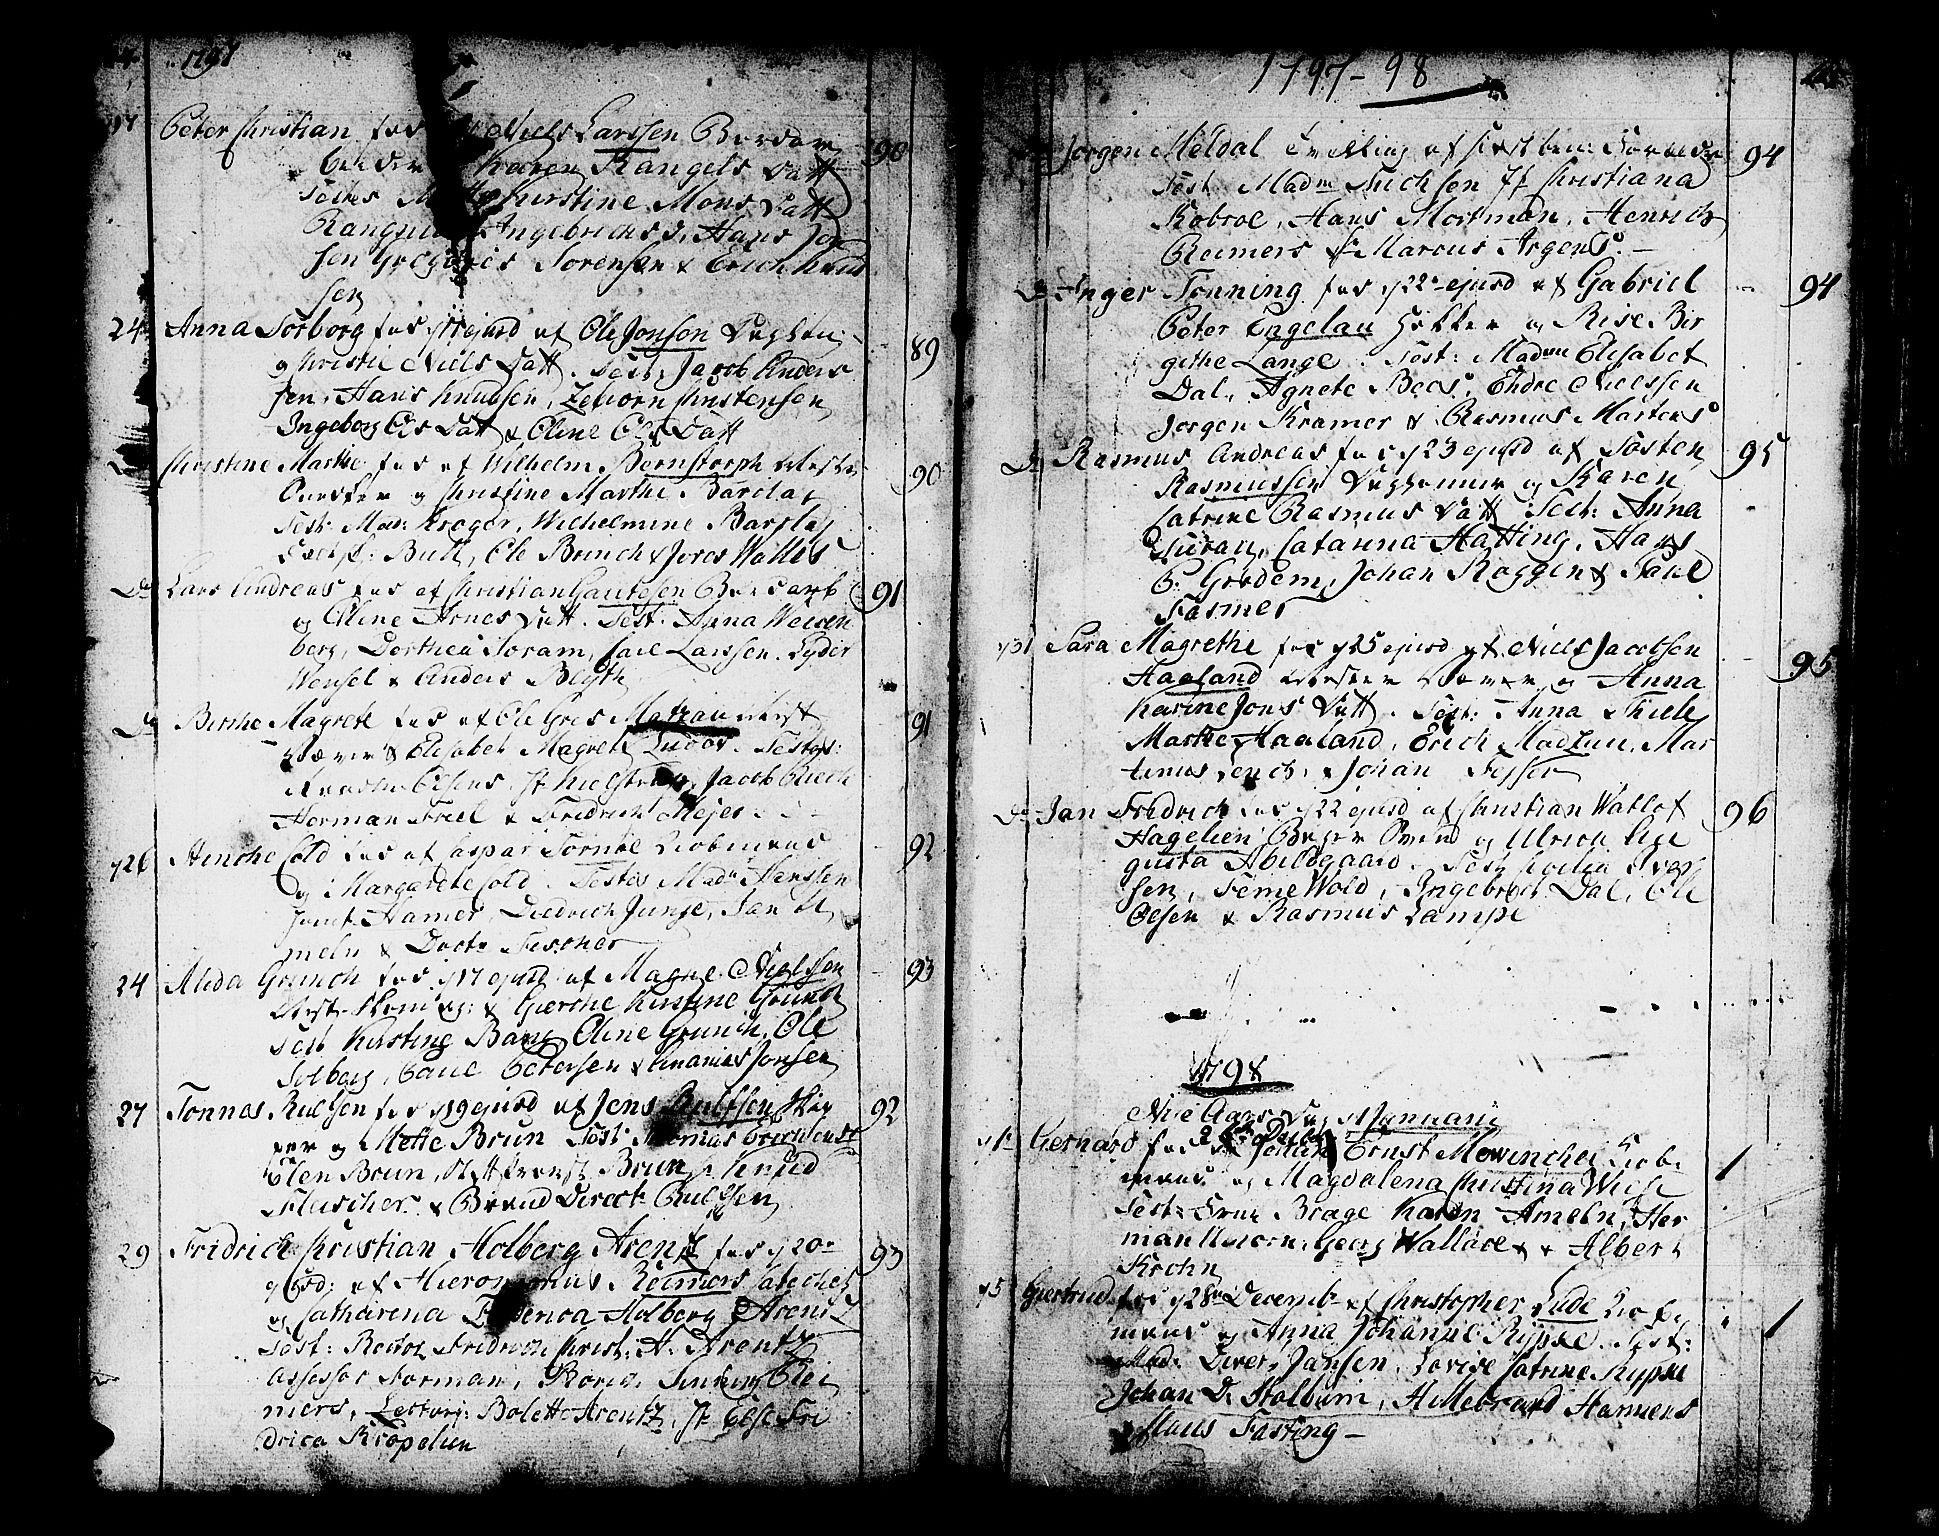 SAB, Domkirken sokneprestembete, H/Haa/L0004: Parish register (official) no. A 4, 1763-1820, p. 164-165